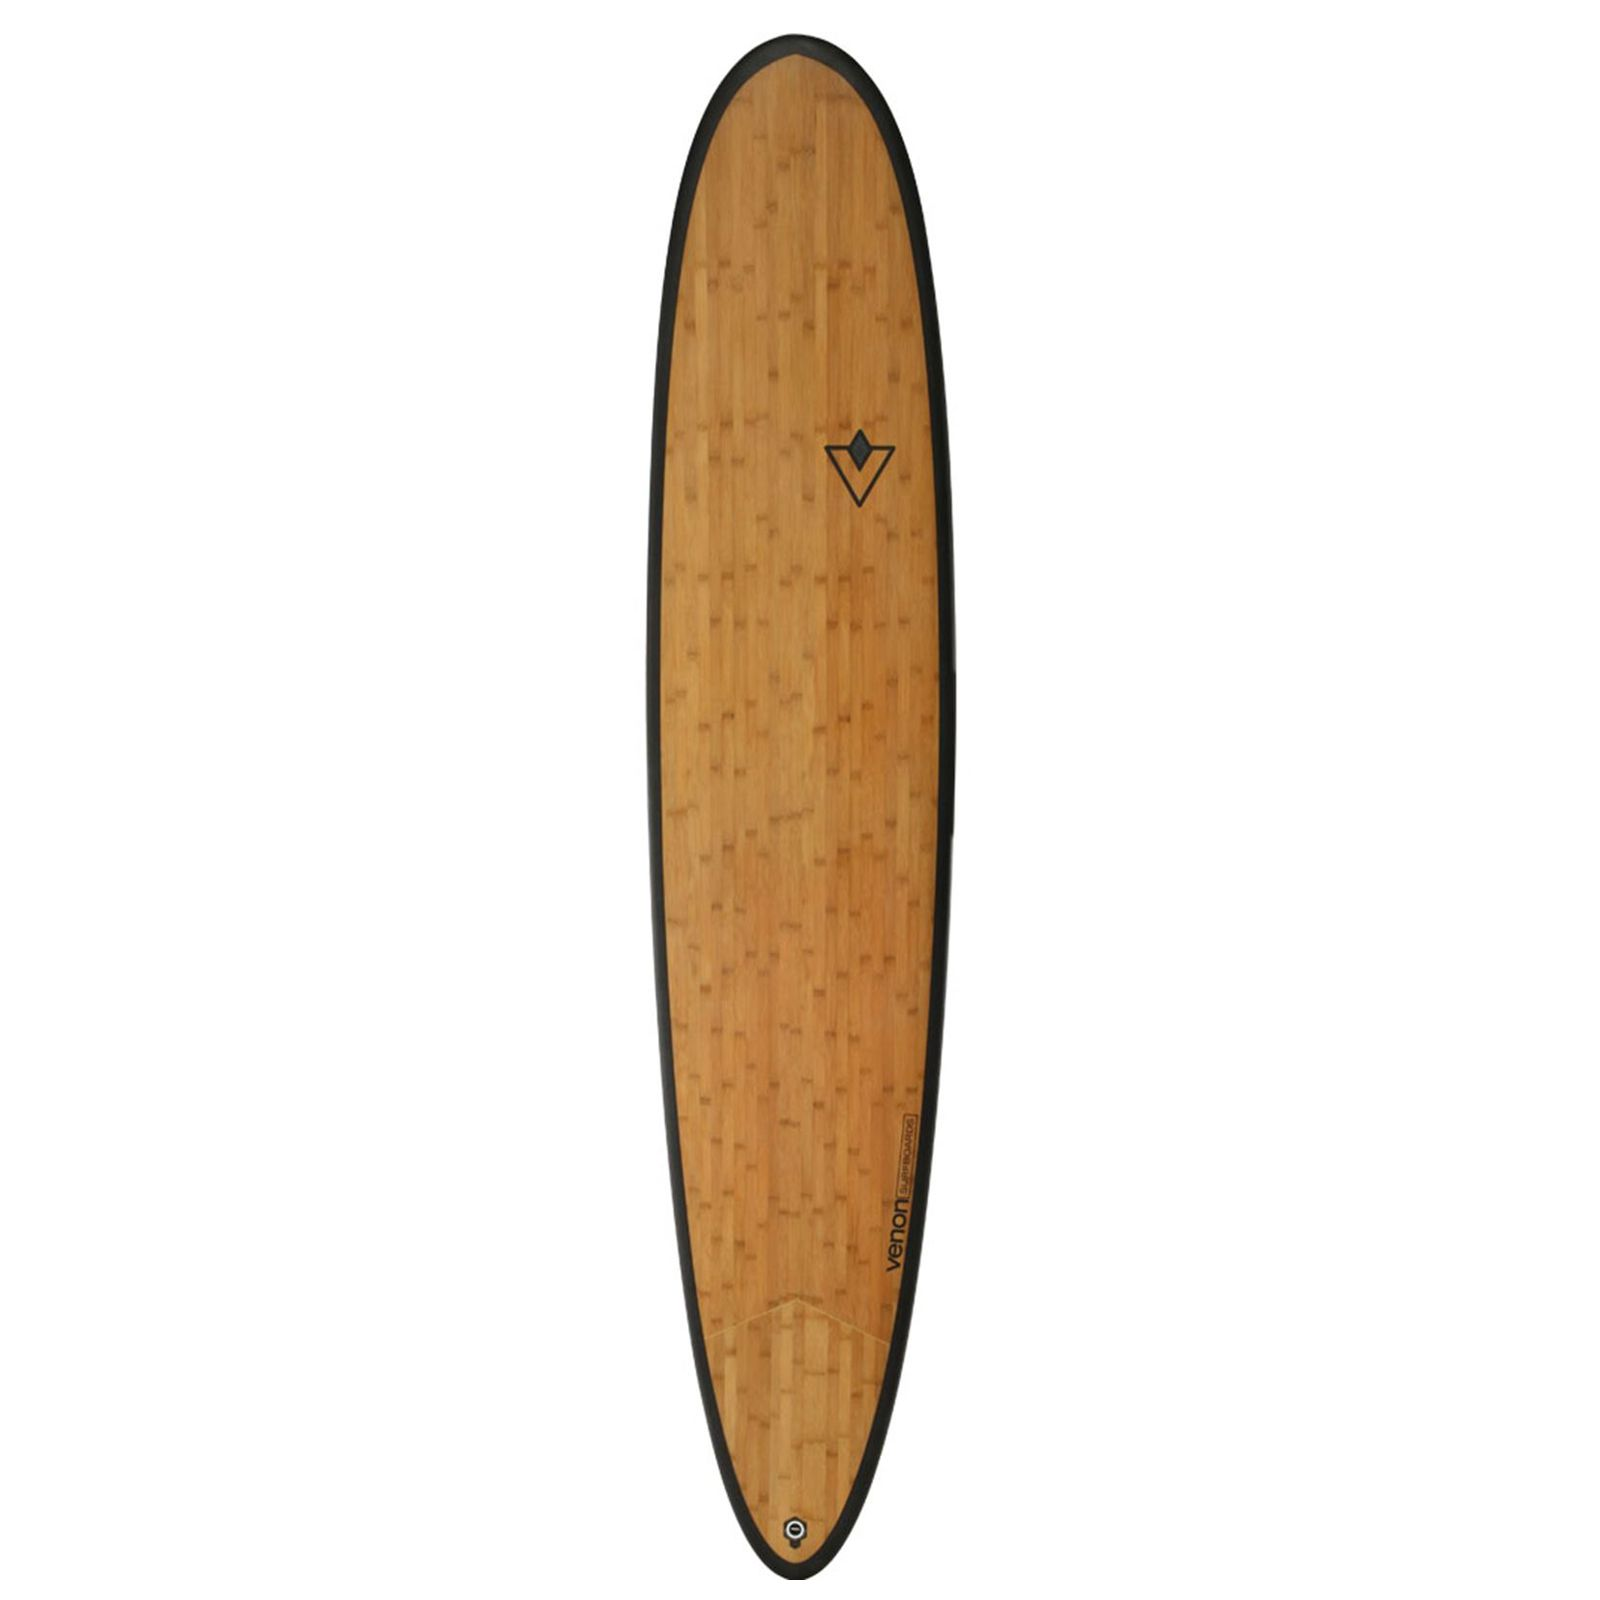 Surfboard VENON Wood 9.0 Blade Bamboo Long